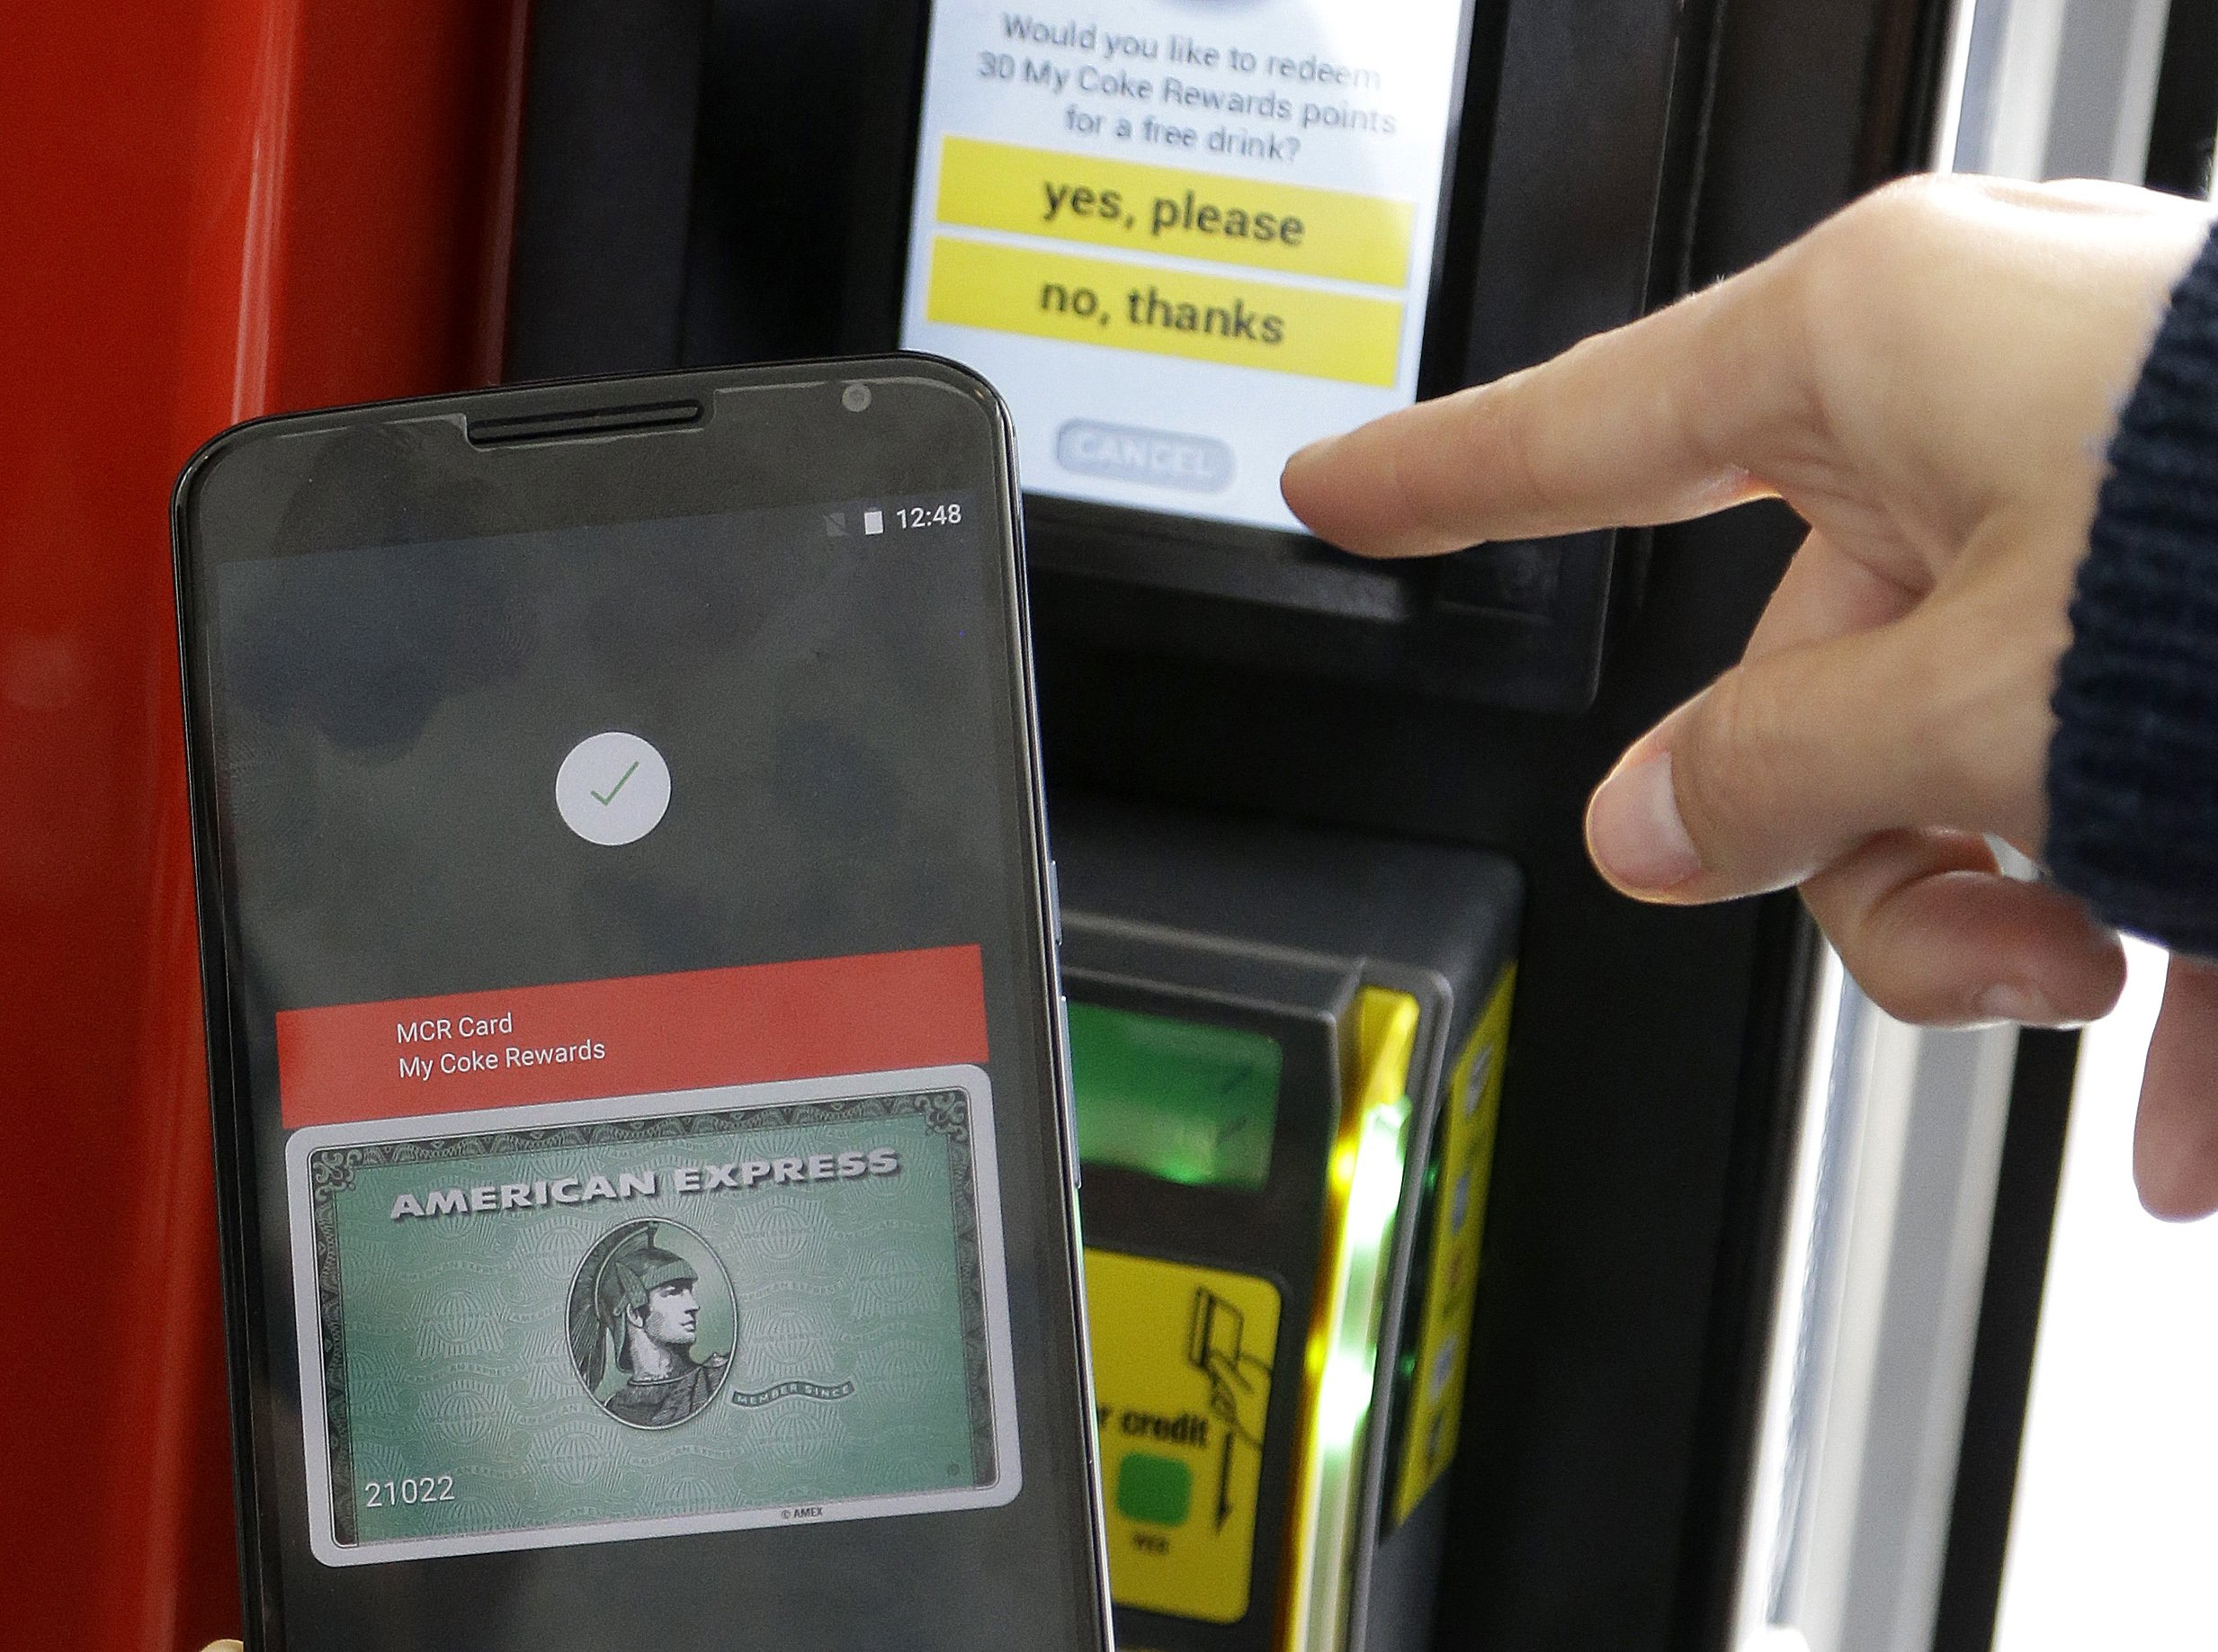 Google's Android Pay will be on the next version of Google's Android operating system, and it will boast new ways to fetch information, pay merchants and protect privacy on mobile devices as the Internet company duels with Apple in the quest to make their technology indispensable.